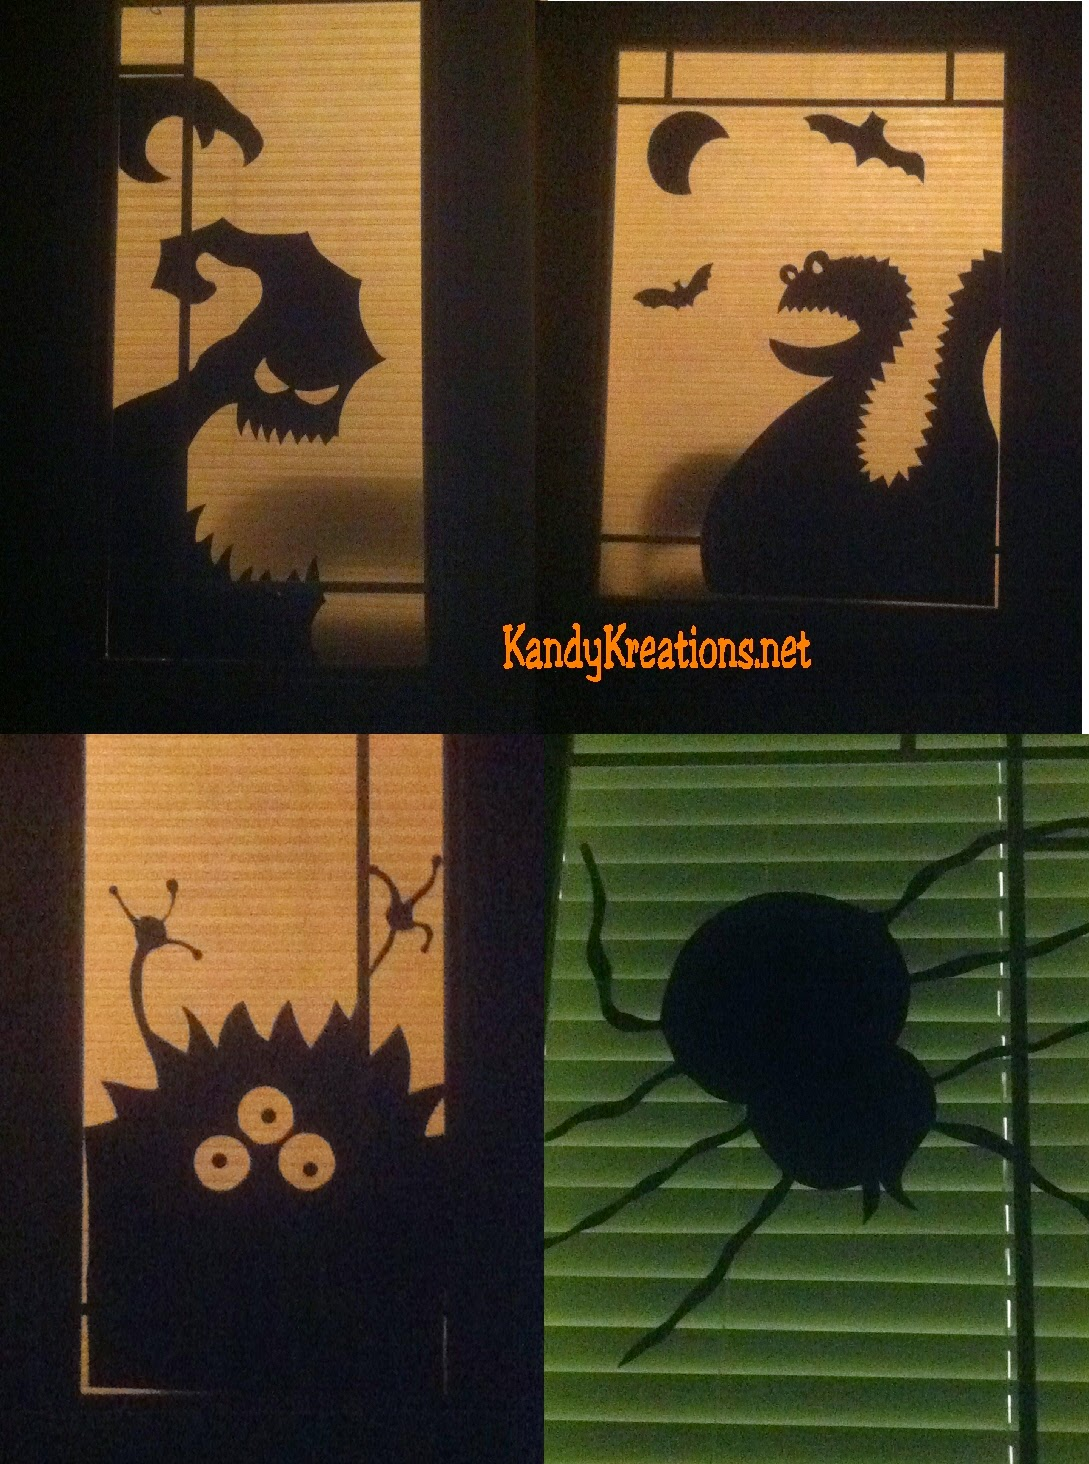 Dress your home up for Halloween with these fun and easy Halloween door decorations and window decorations.  These Halloween decorations are made with poster board and Halloween Monster eyes to create fun and eye popping Halloween door decorations, while the monster silhouette shapes create a non-scary Halloween window decoration with ease.